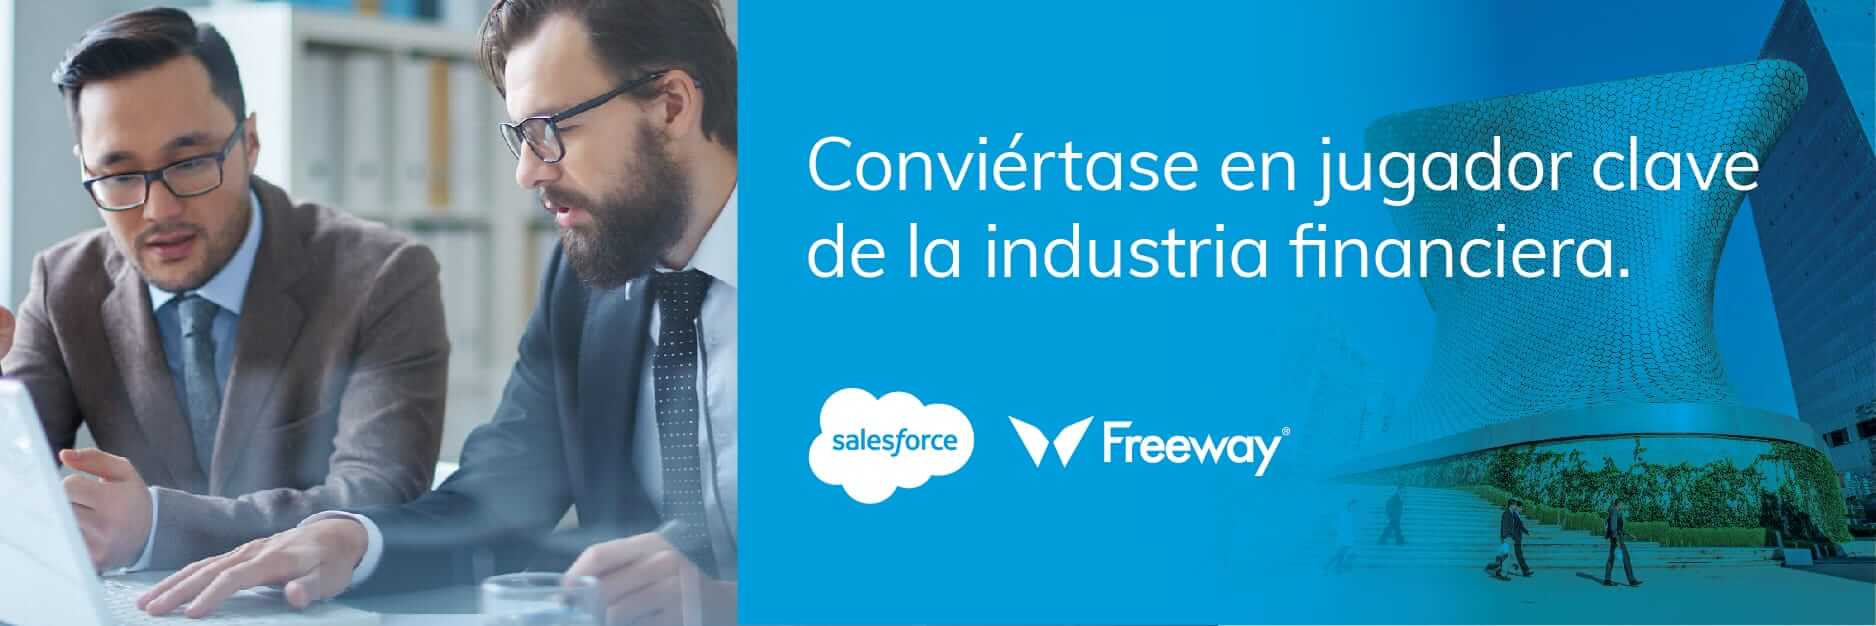 Domine exitosamente la revolución digital del mercado financiero con un Salesforce partner